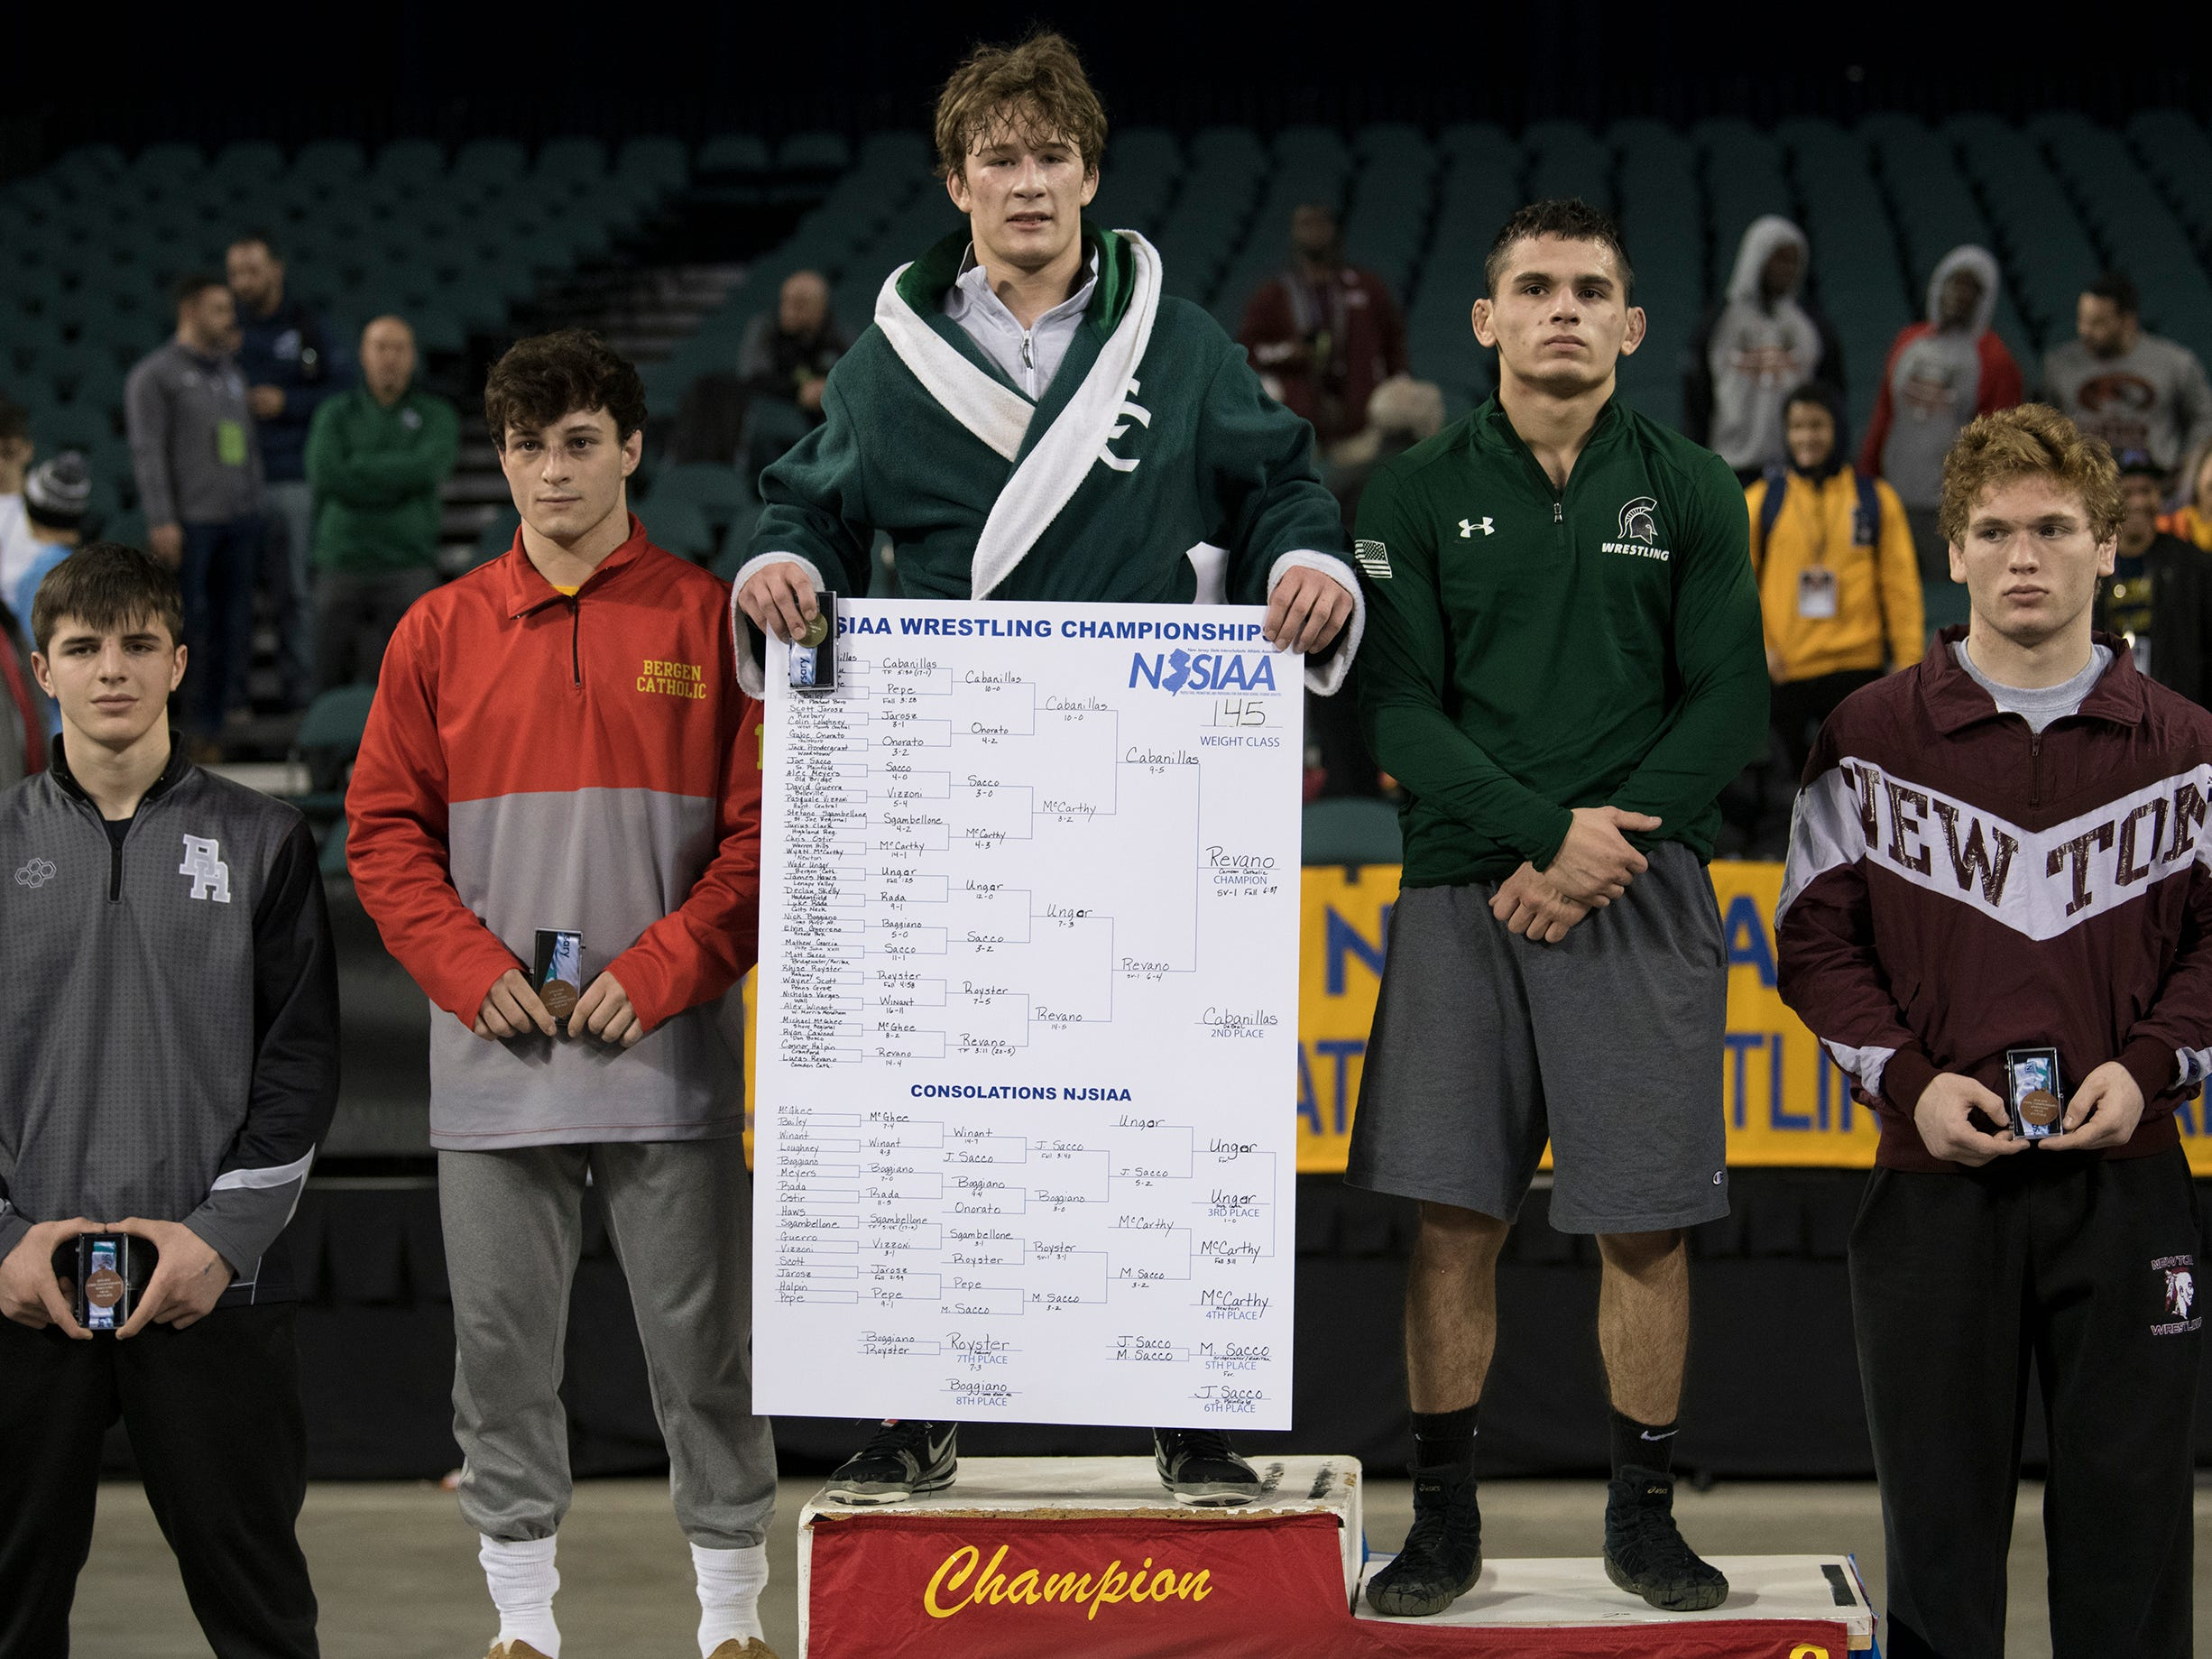 Camden Catholic's Lucas Revano, center, stands a top the podum after he won his second state title by pinning DePaul's Ricky Cabanillas in overtime of the 145 lb. championship bout of the 2019 NJSIAA State Wrestling Championships tournament held at Boardwalk Hall in Atlantic City on Saturday, March 2, 2019.